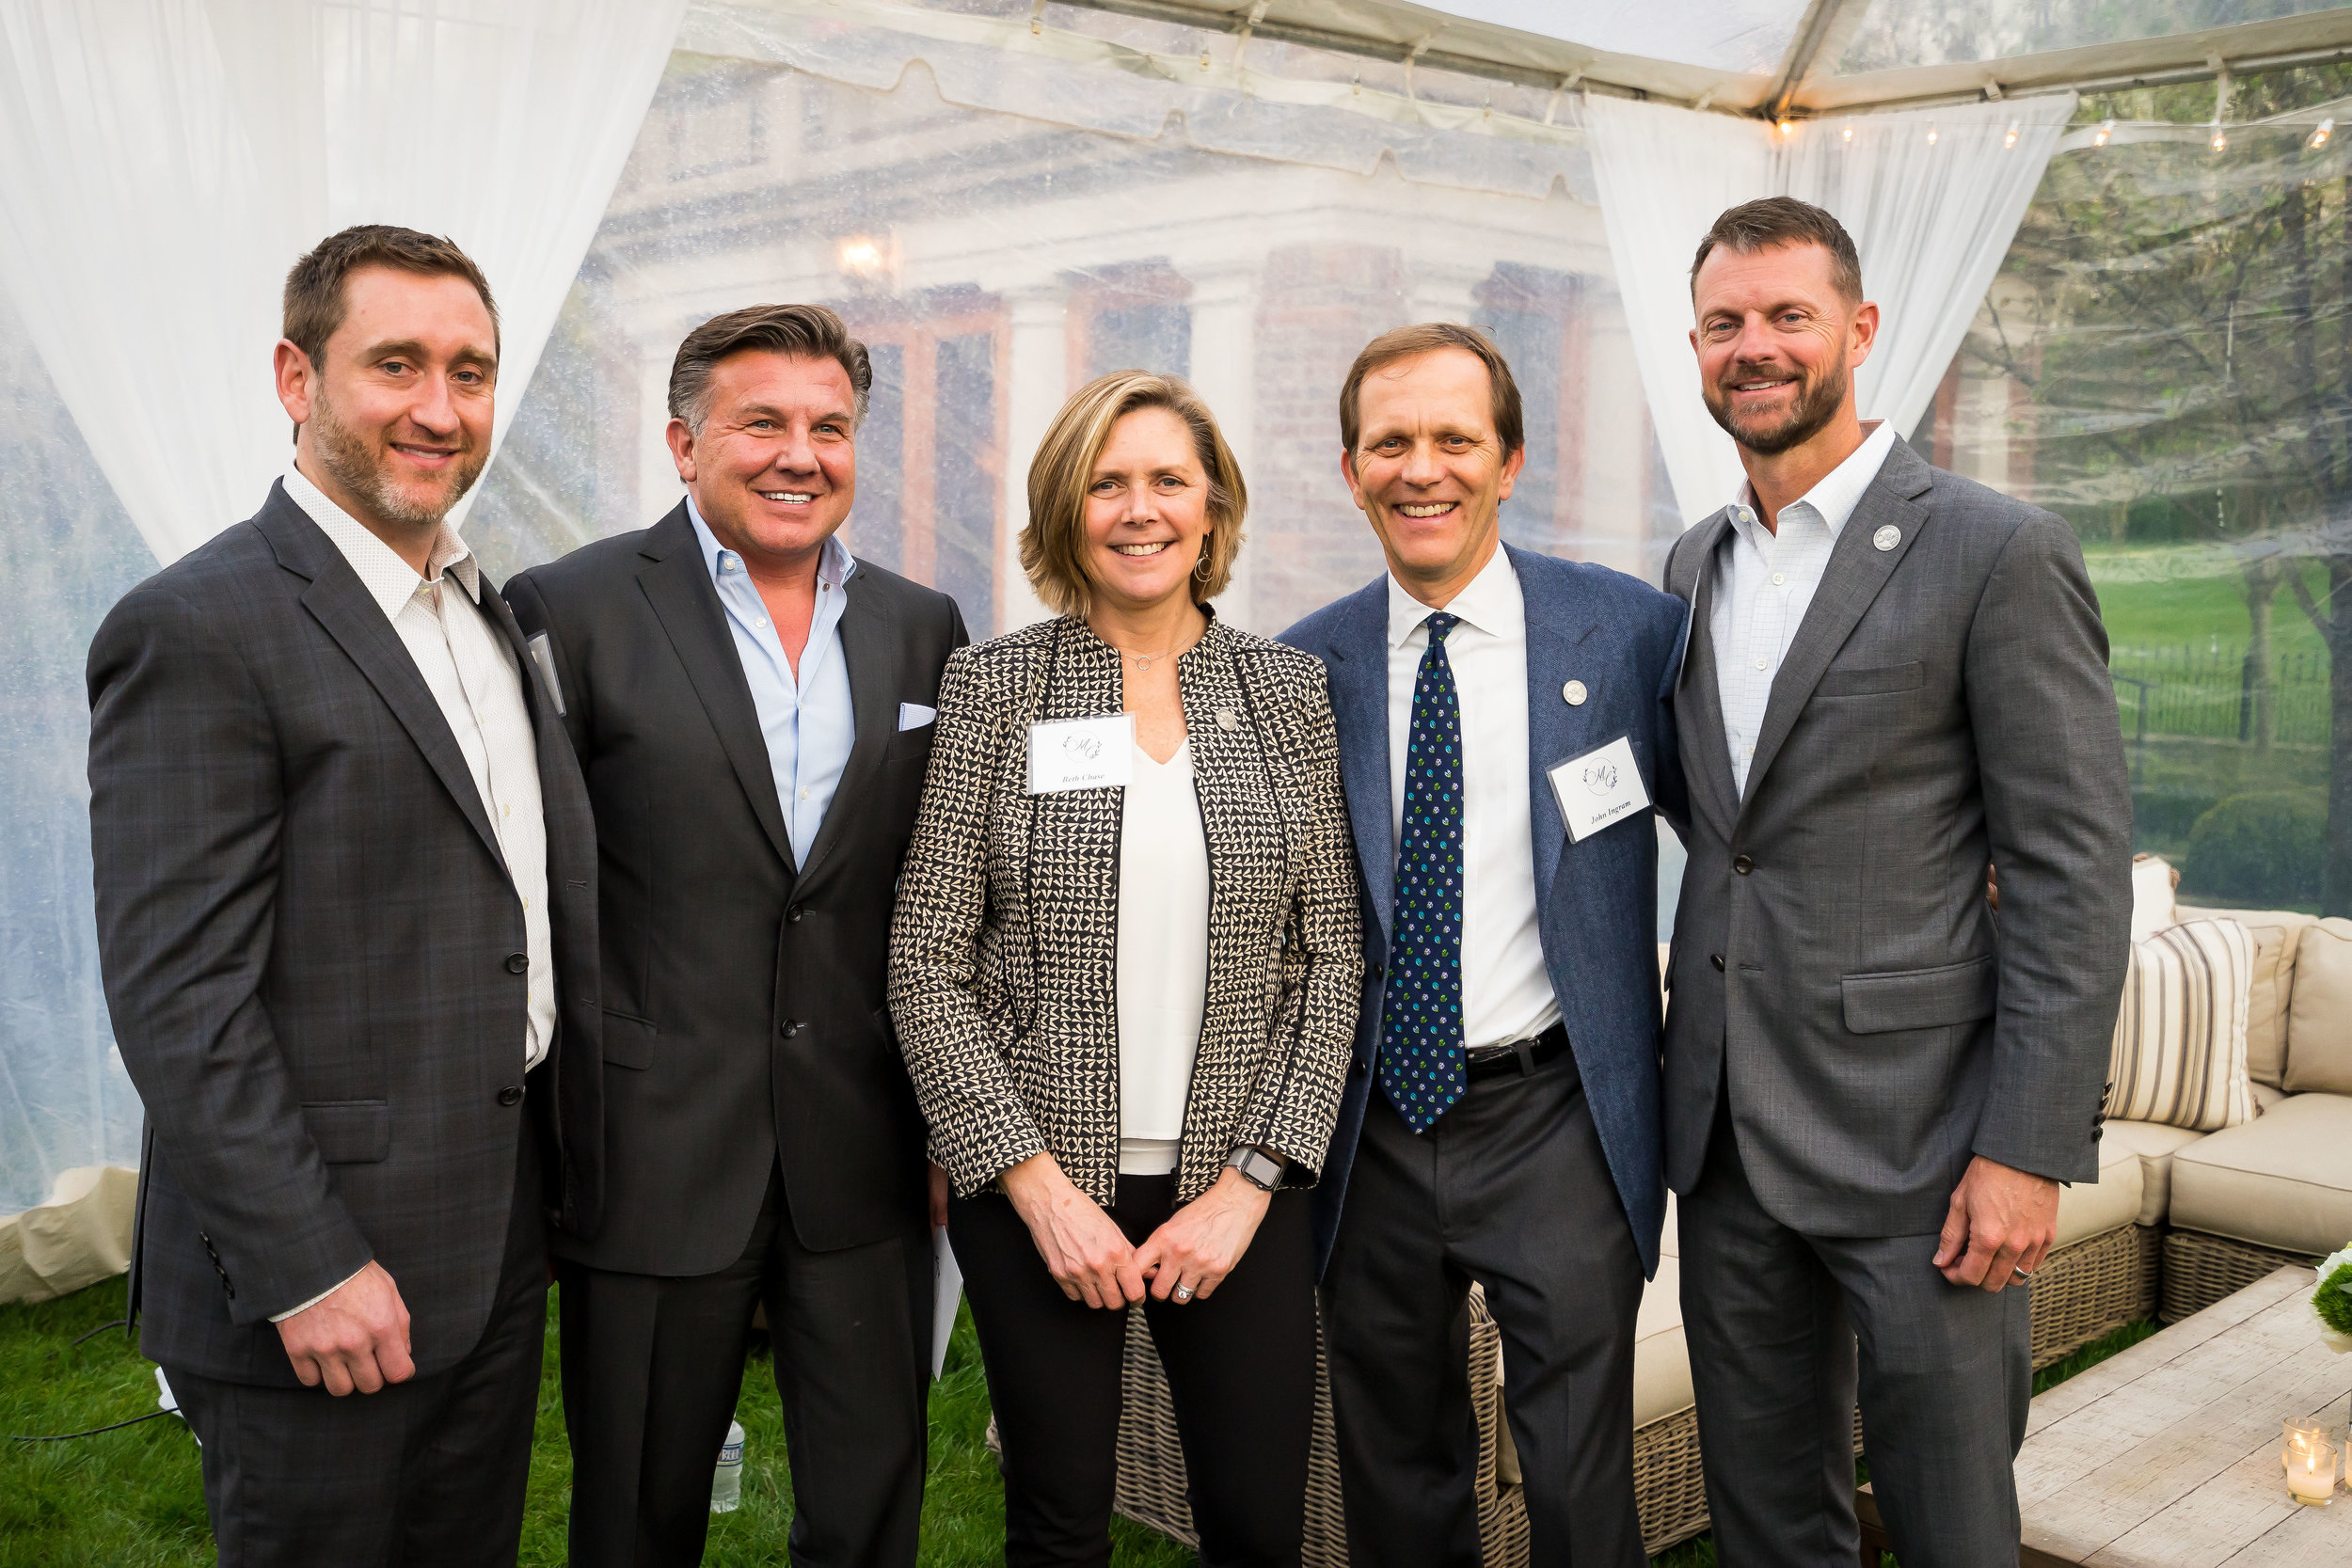 Pictured above : Michael Brody-Waite, Michael Burcham, Beth Chase, John Ingram (McWhorter Circle Inaugural Chair), and Stuart McWhorter at The McWhorter Circle's Founding Reception